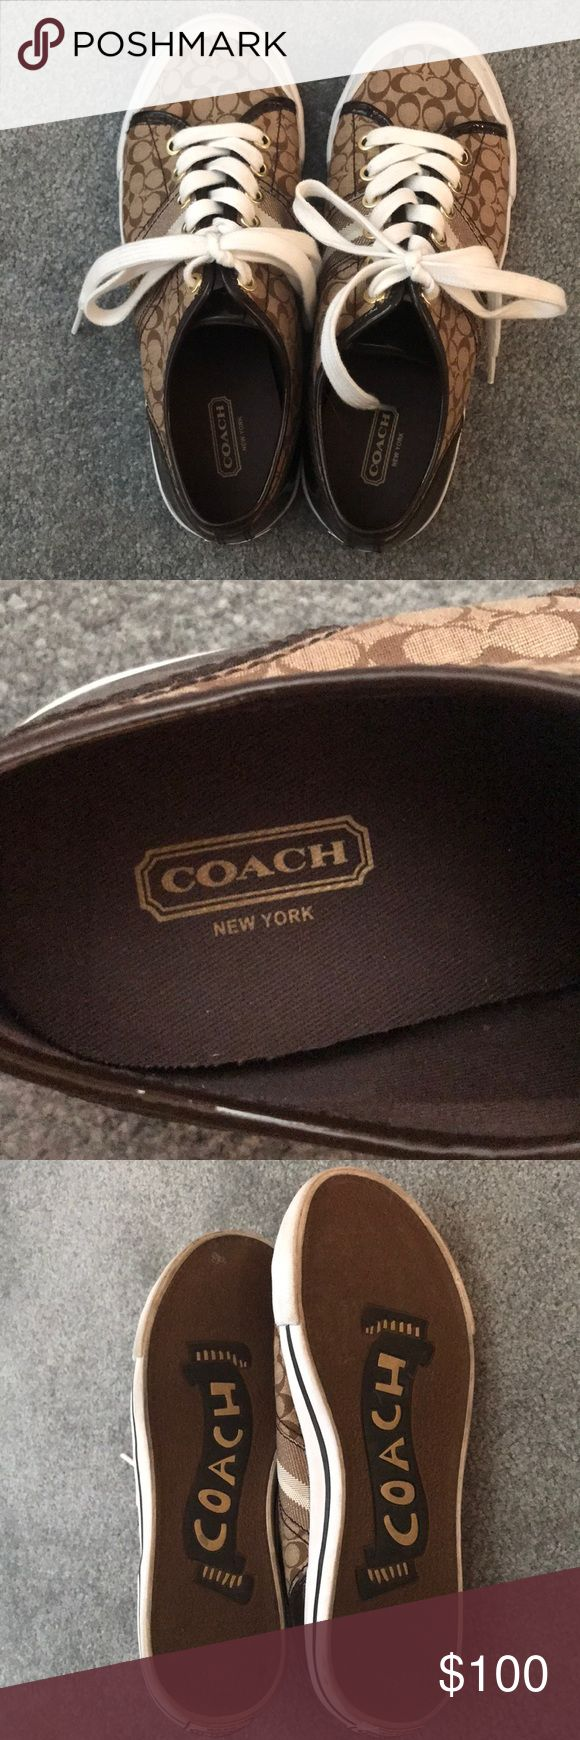 COACH SNEAKERS Like new coach sneakers! Signs of wear are shown. Very lightweight and comfortable! Coach Shoes Sneakers